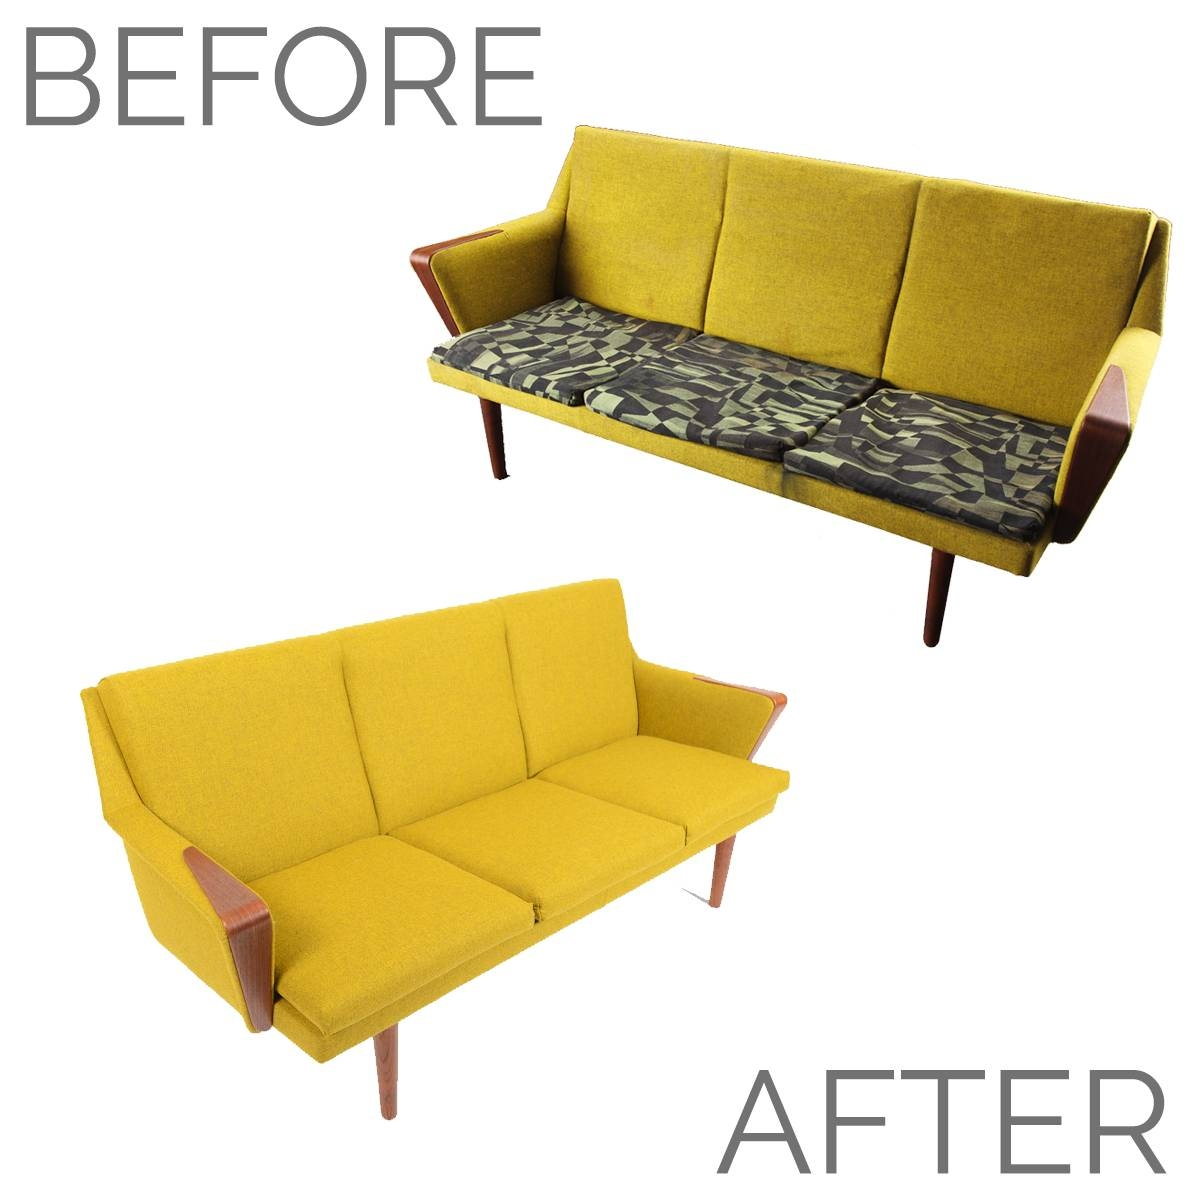 Before + After - Danish Modern Chartreuse Sofa • Mid Century Mobler within Chartreuse Sofas (Image 2 of 15)